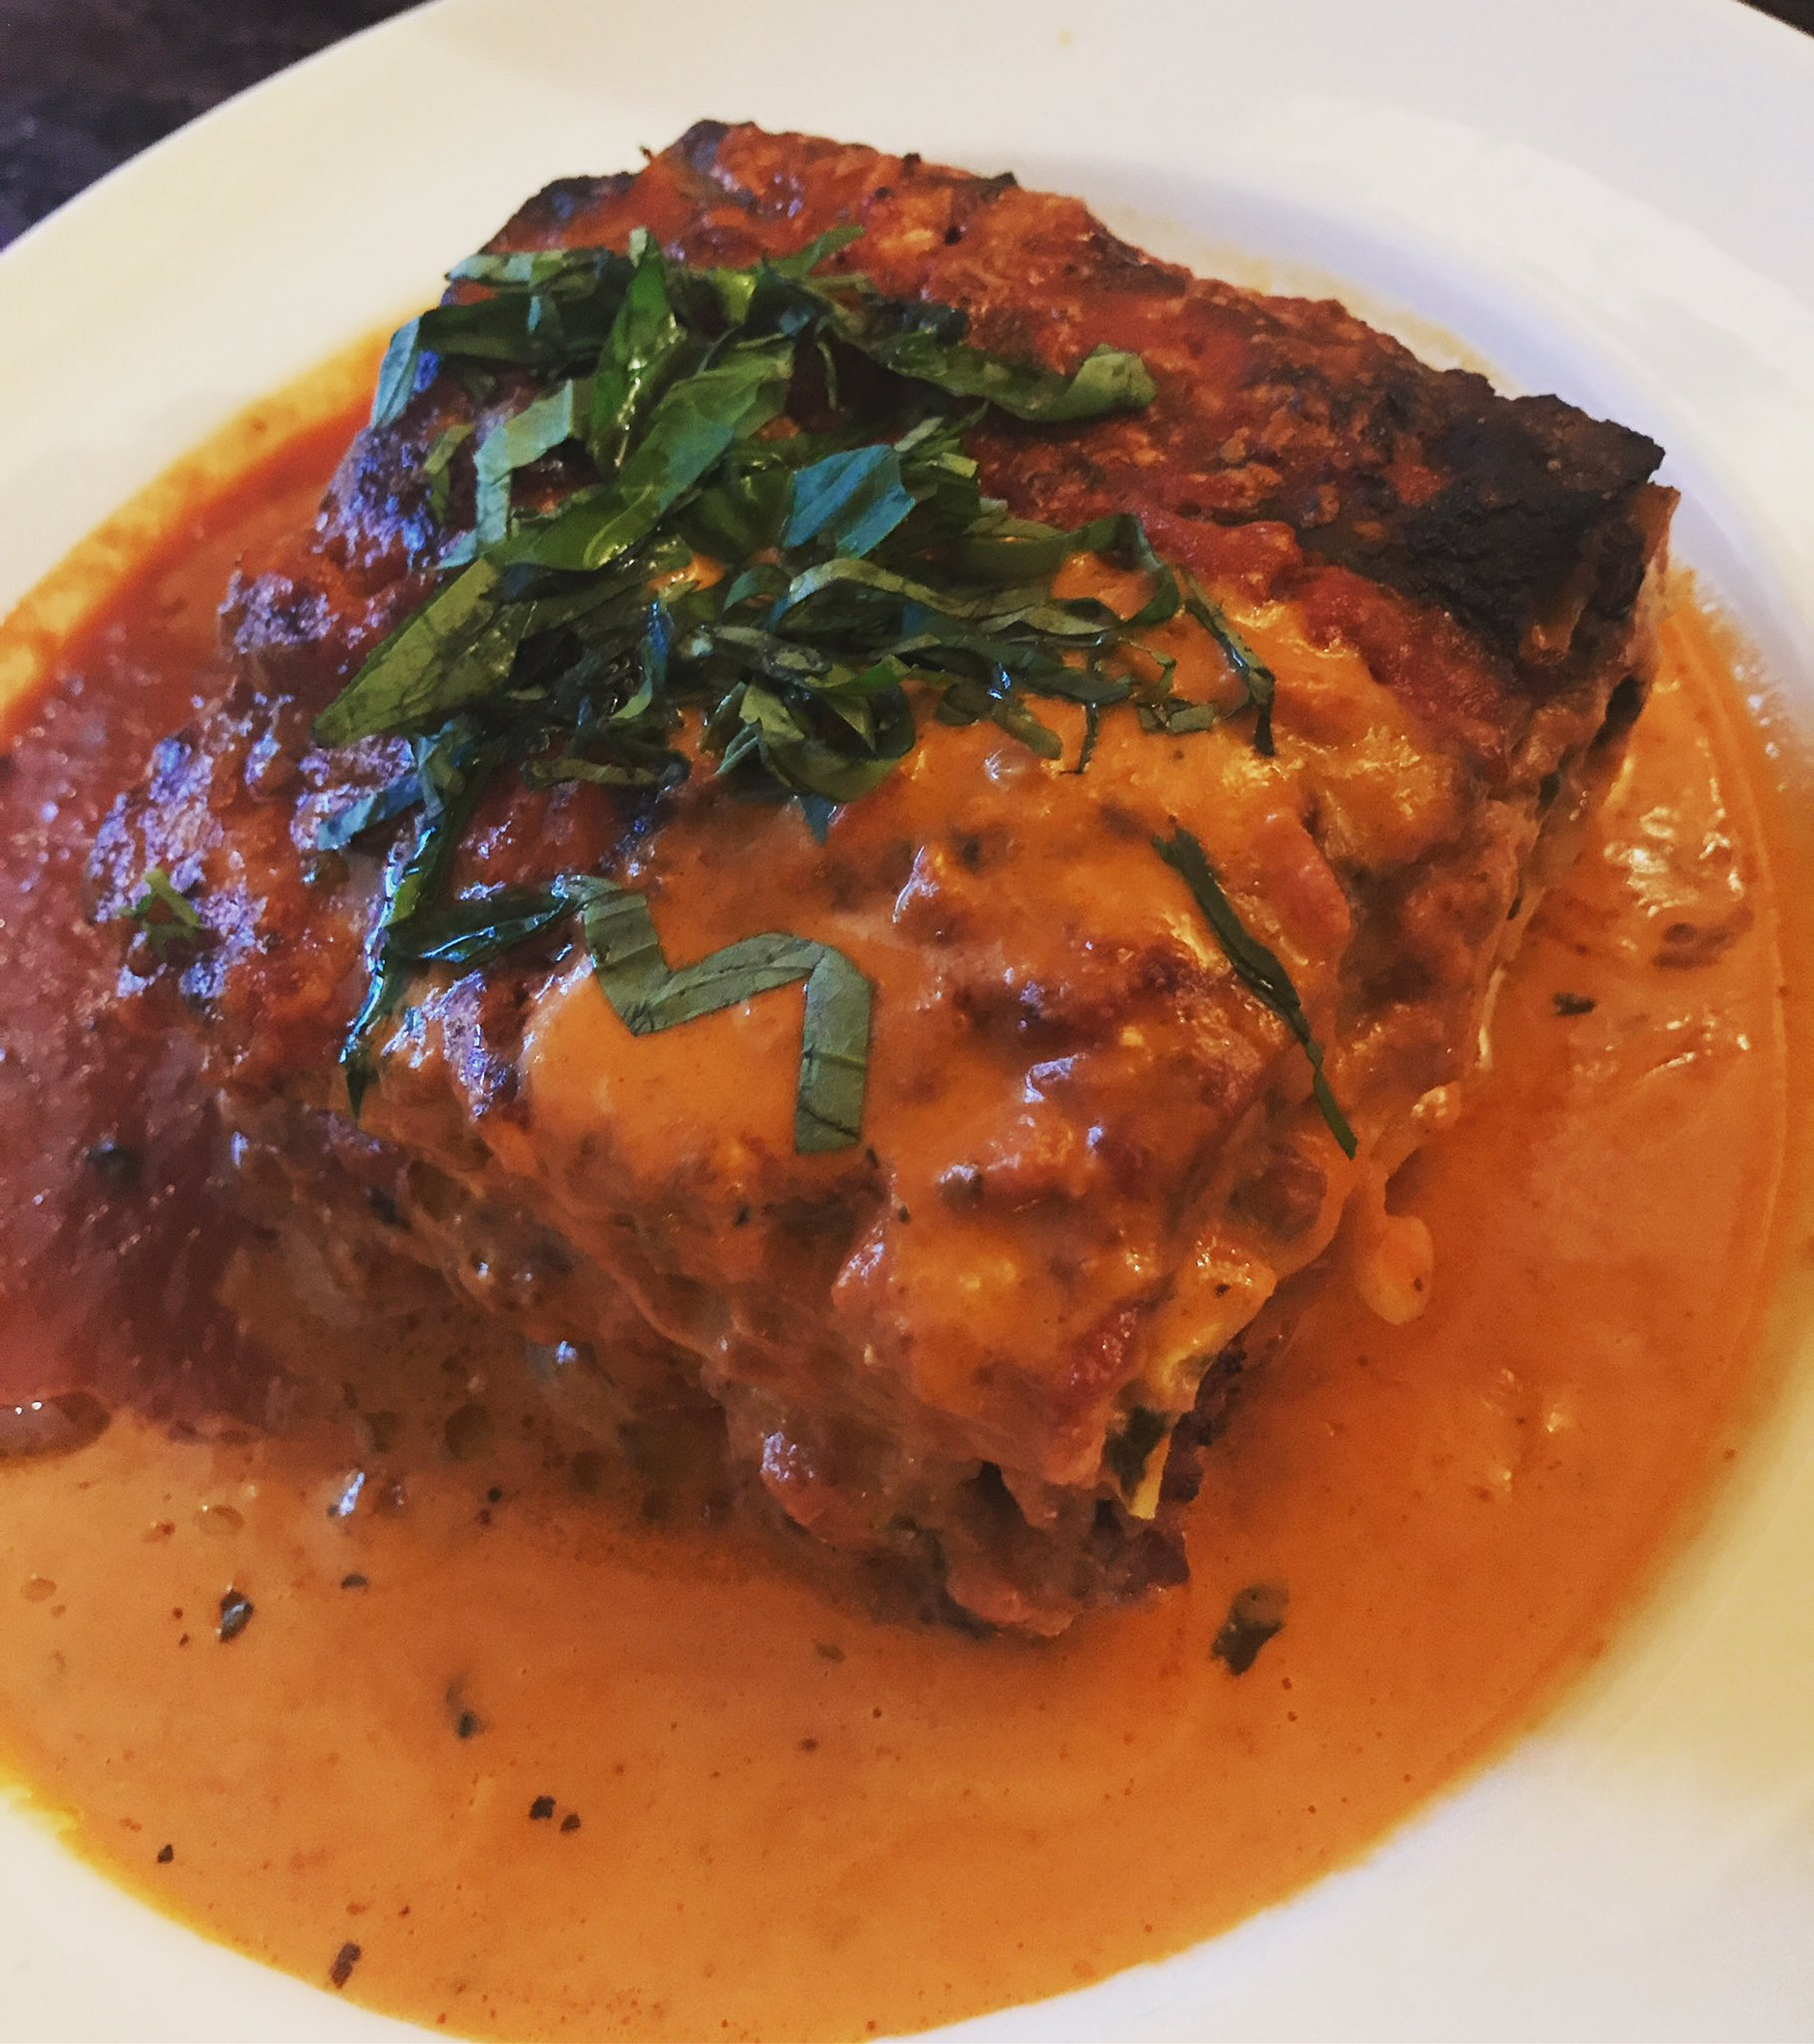 Lasagna Alla Bolognese #lunch #restaurantrownyc #Becco https://t.co/SlL81PF2Mf